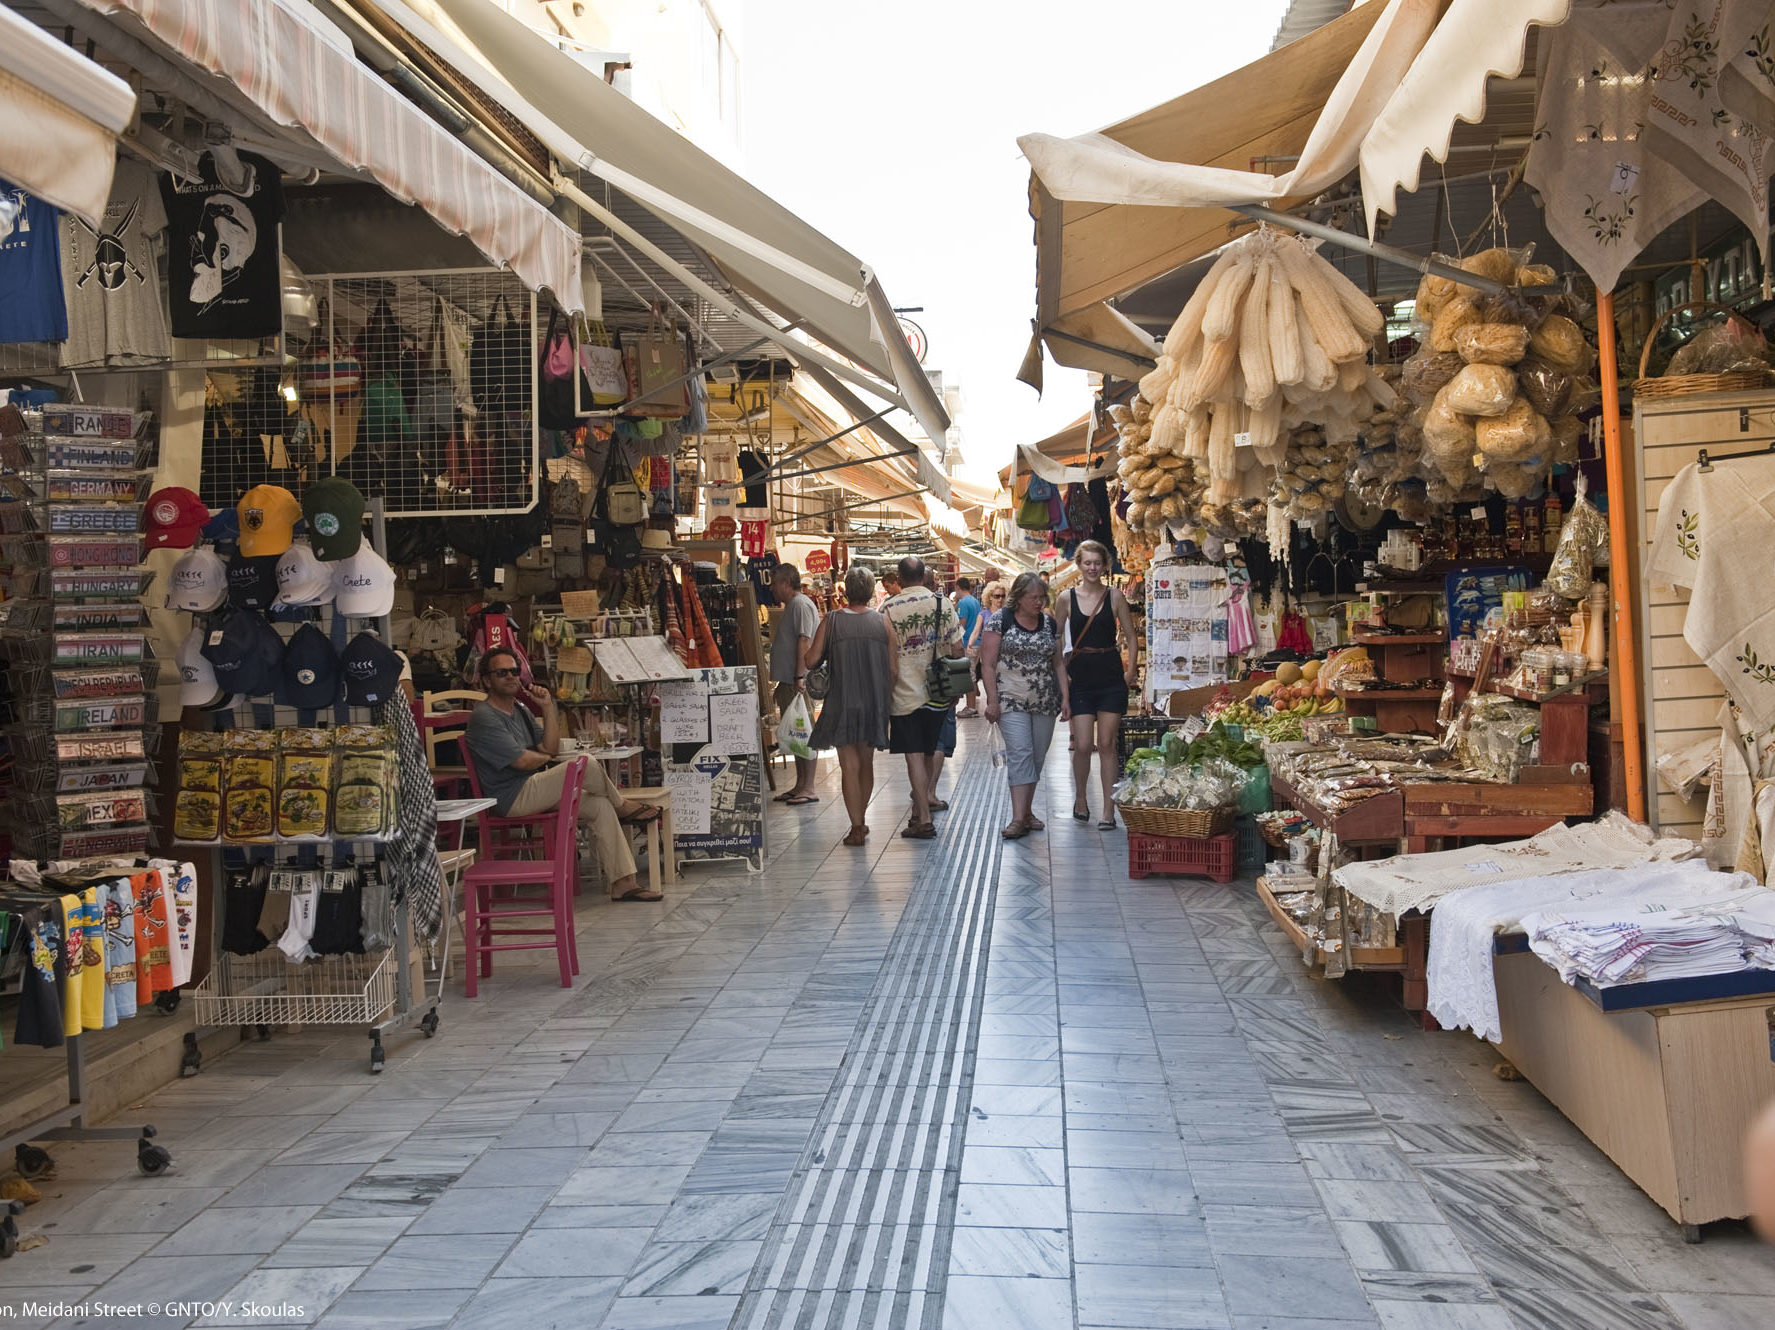 Crete_Heraklion_MeidaniStreet_7974_photo Y Skoulas